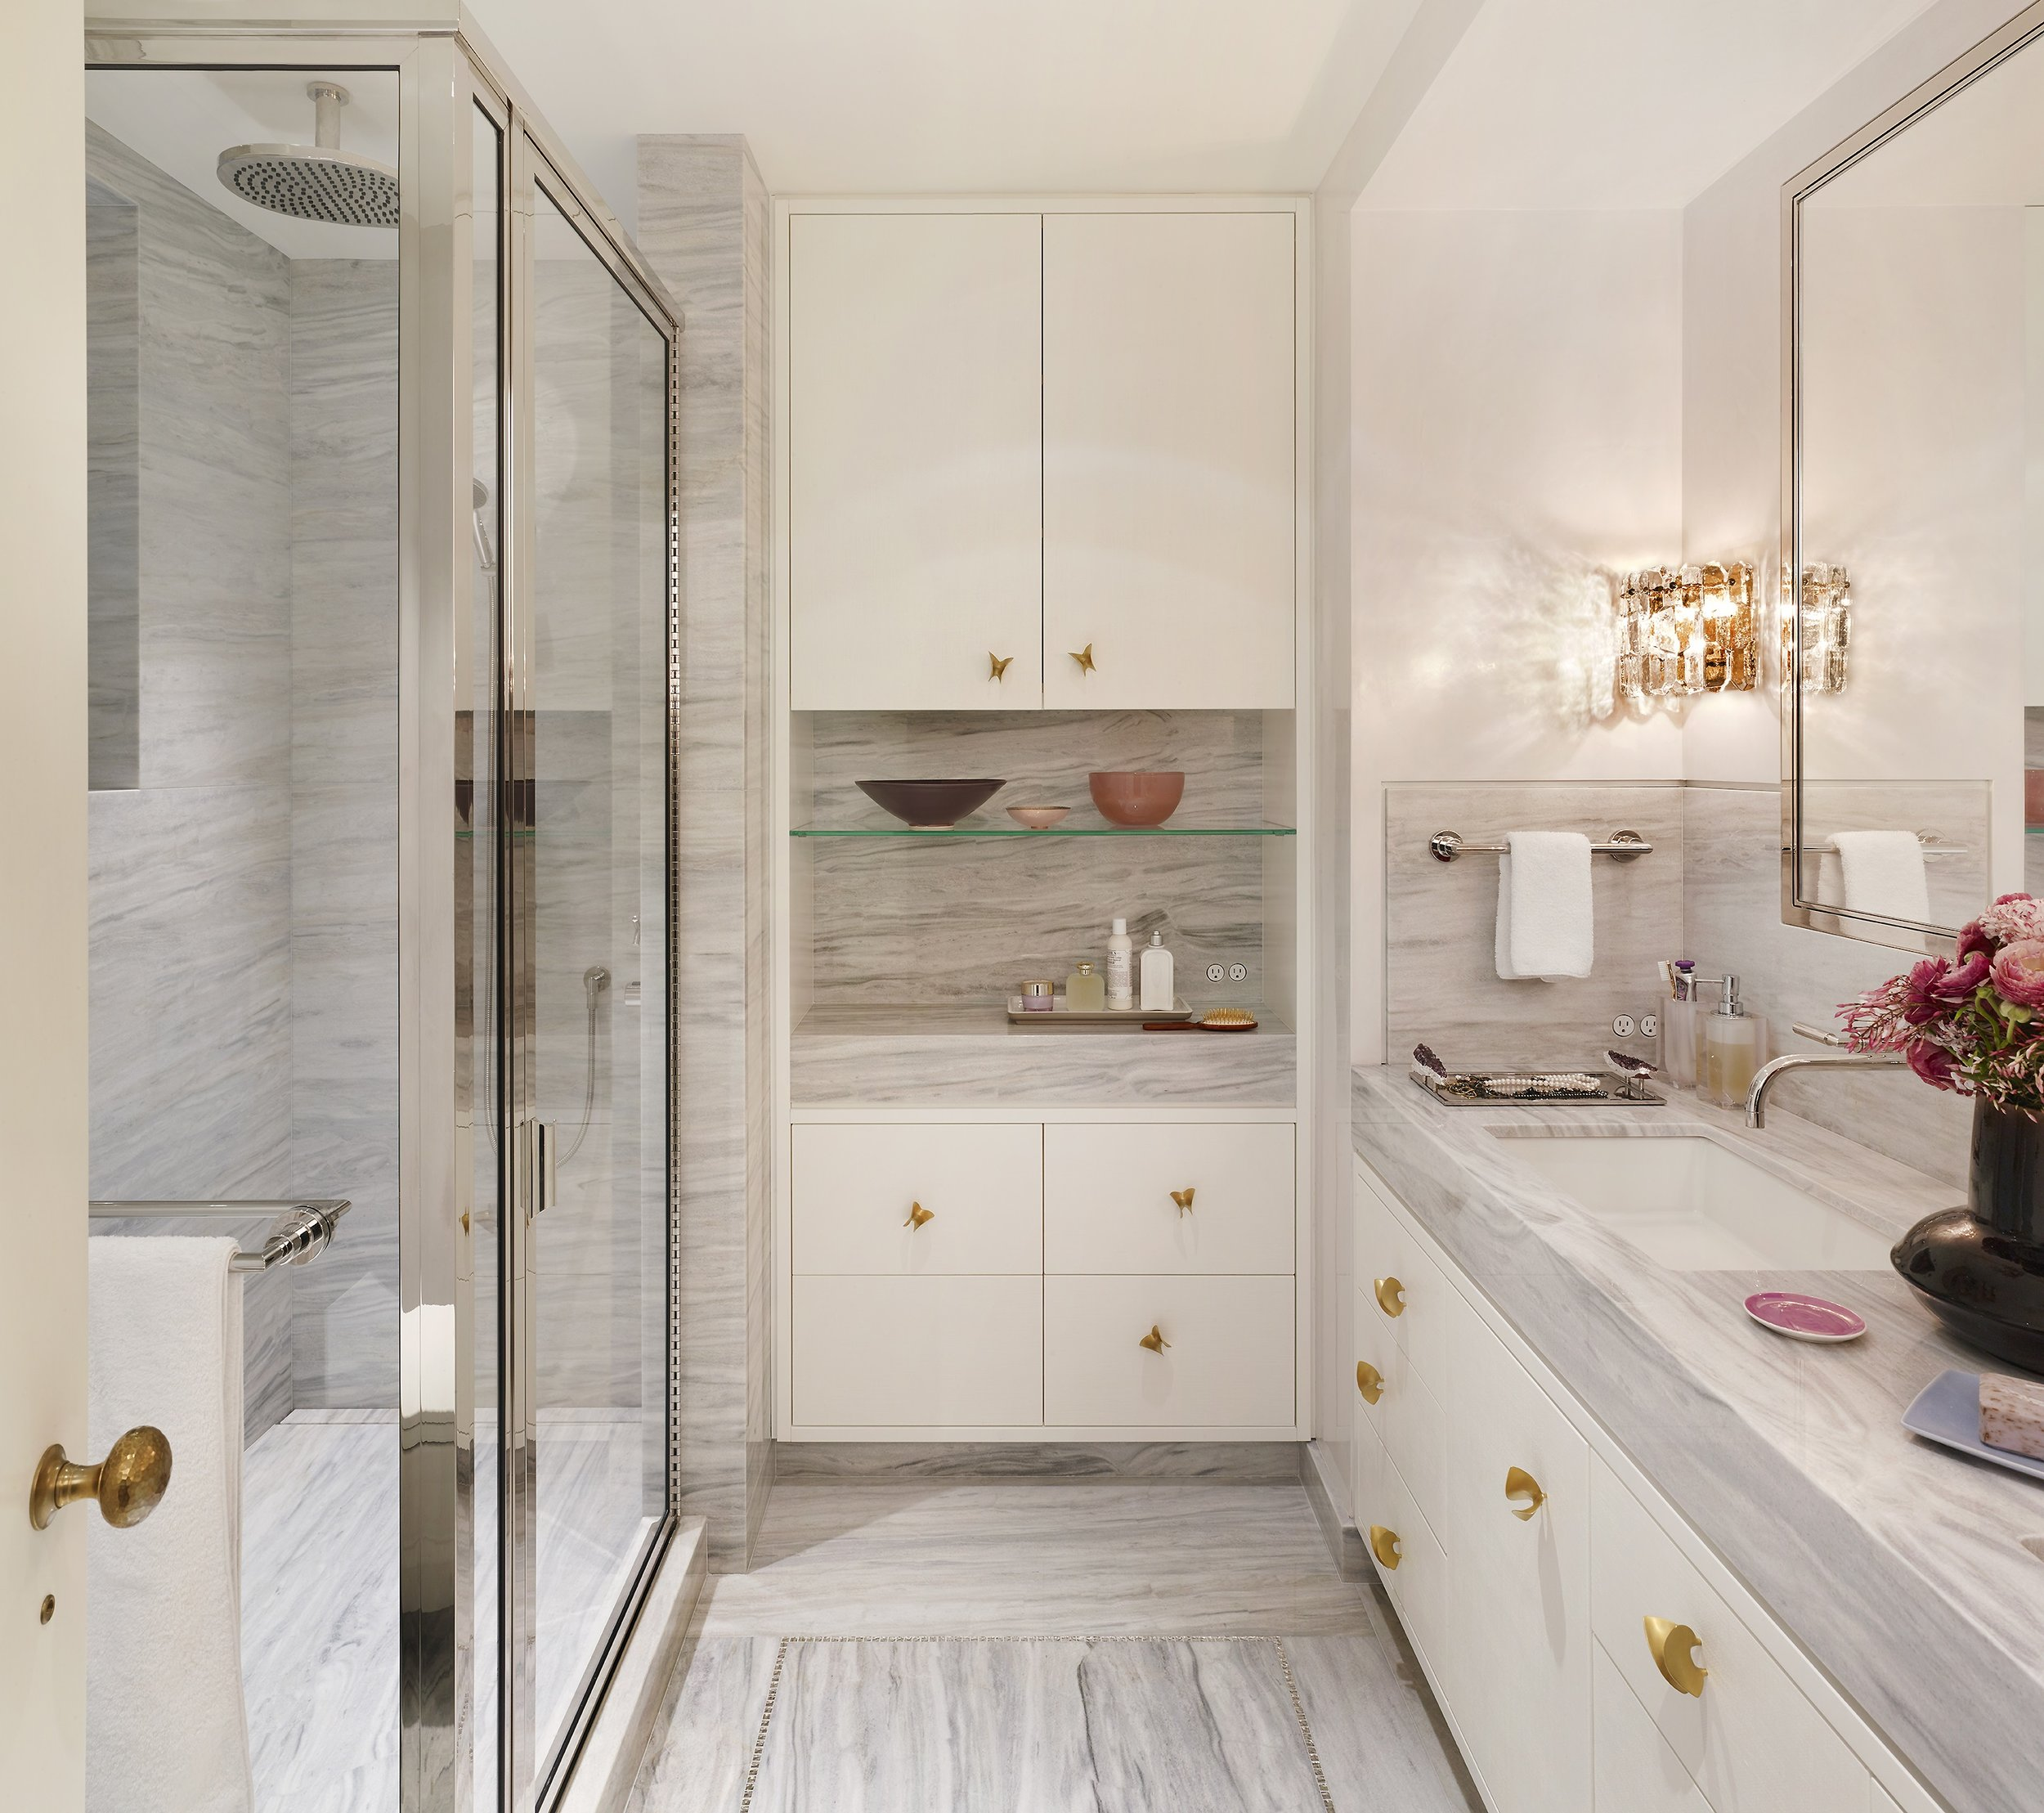 Stonefox 115 East 67th Street Wife's Bathroom MEP designed by 2L Engineering